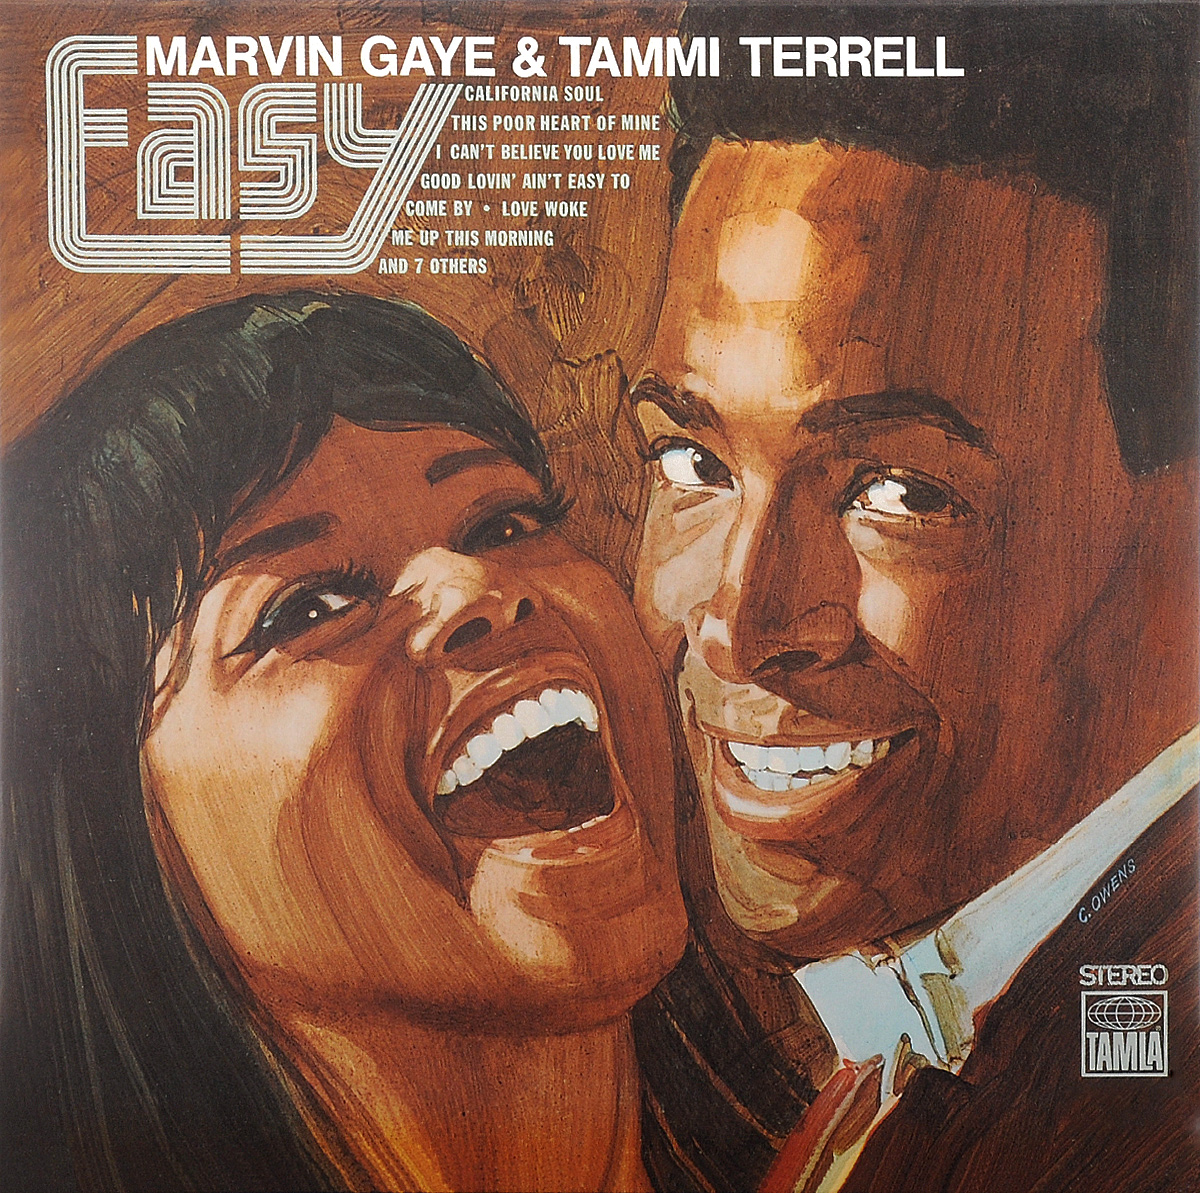 Марвин Гэй,Тамми Тэррелл Marvin Gaye & Tammi Terrell. Easy (LP) клавиатура genius kb m200 black usb